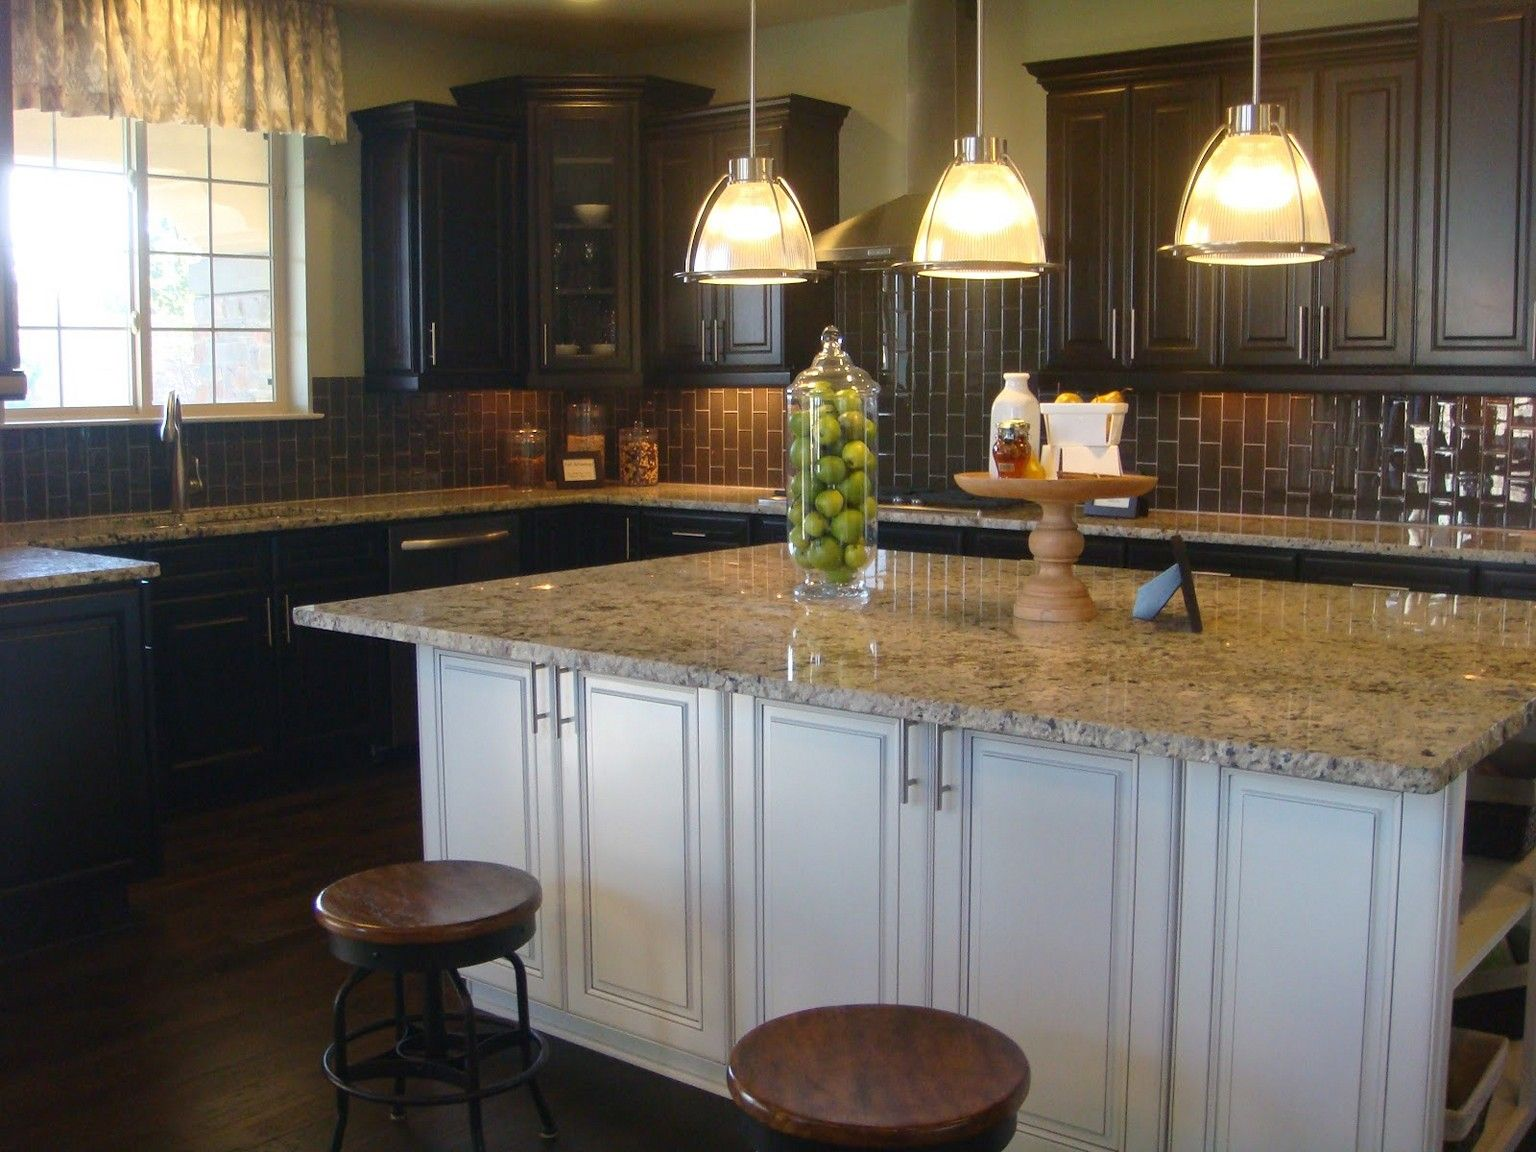 if we stain cabinets expresso/dark, we *can* have somewhat darker